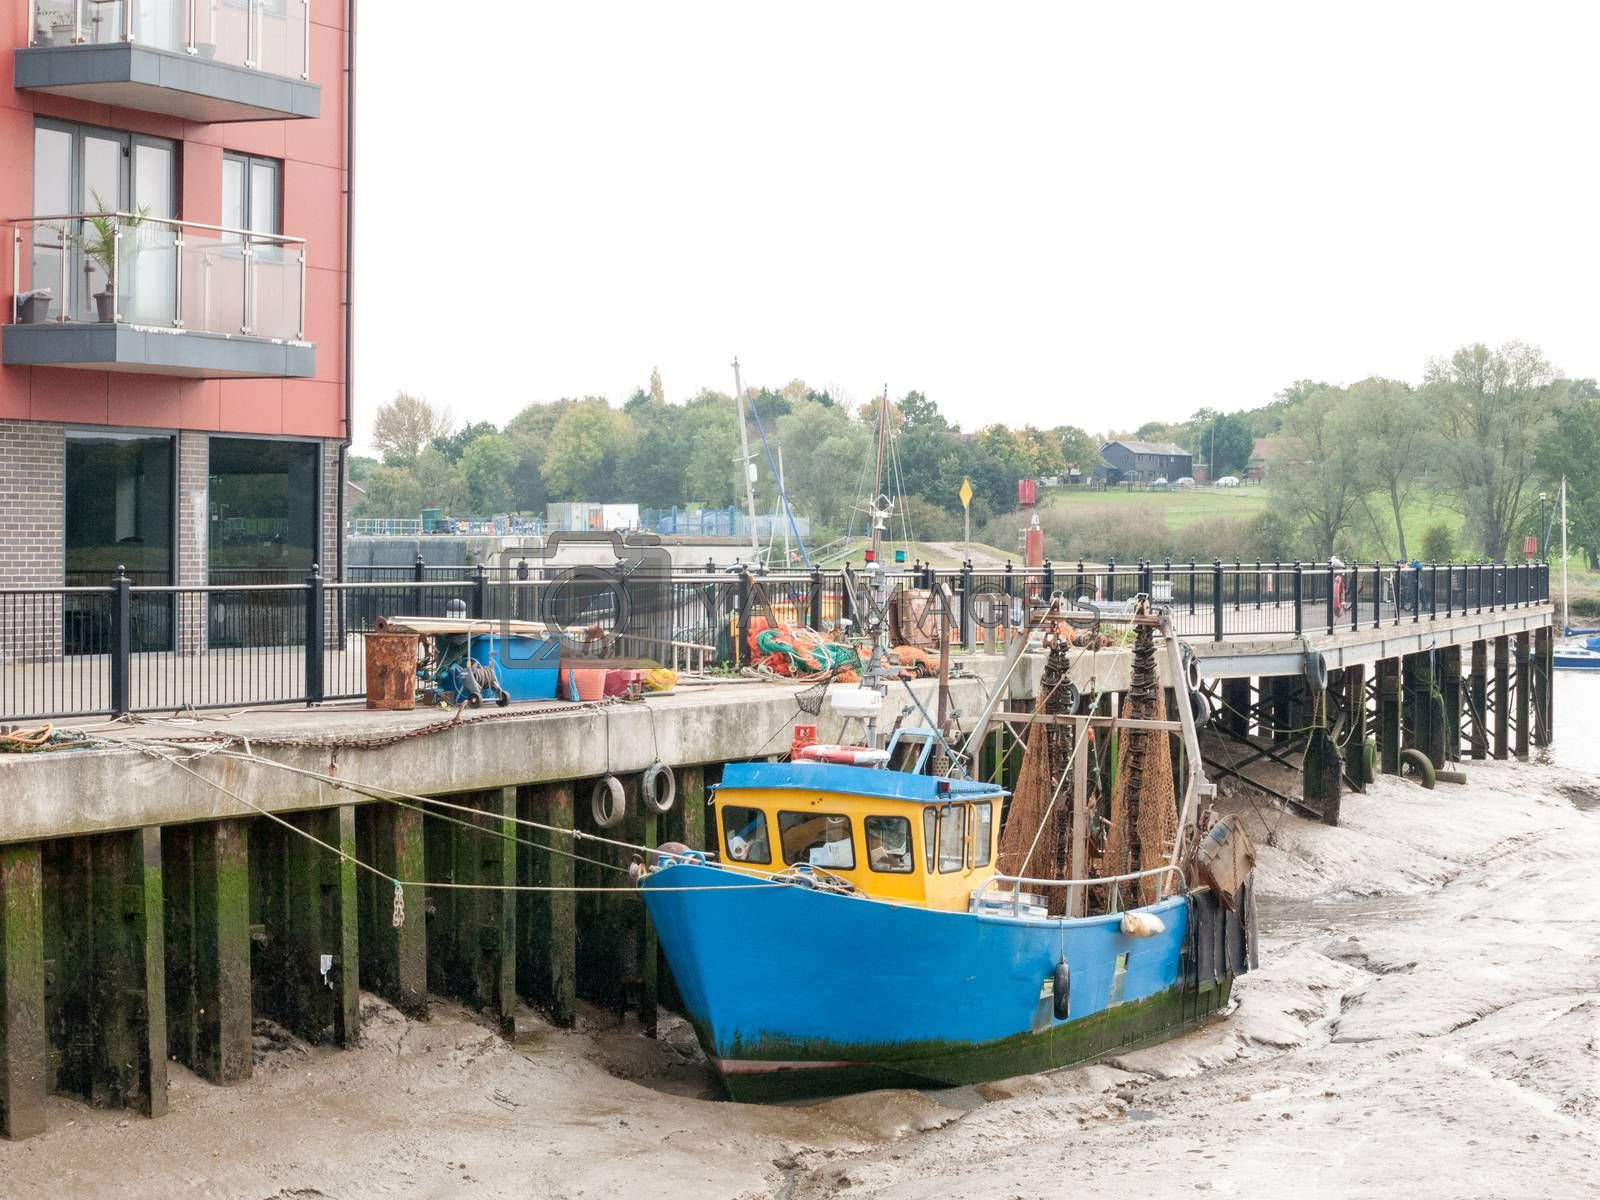 blue fishing boat parked in pier mud dock; essex; england; uk